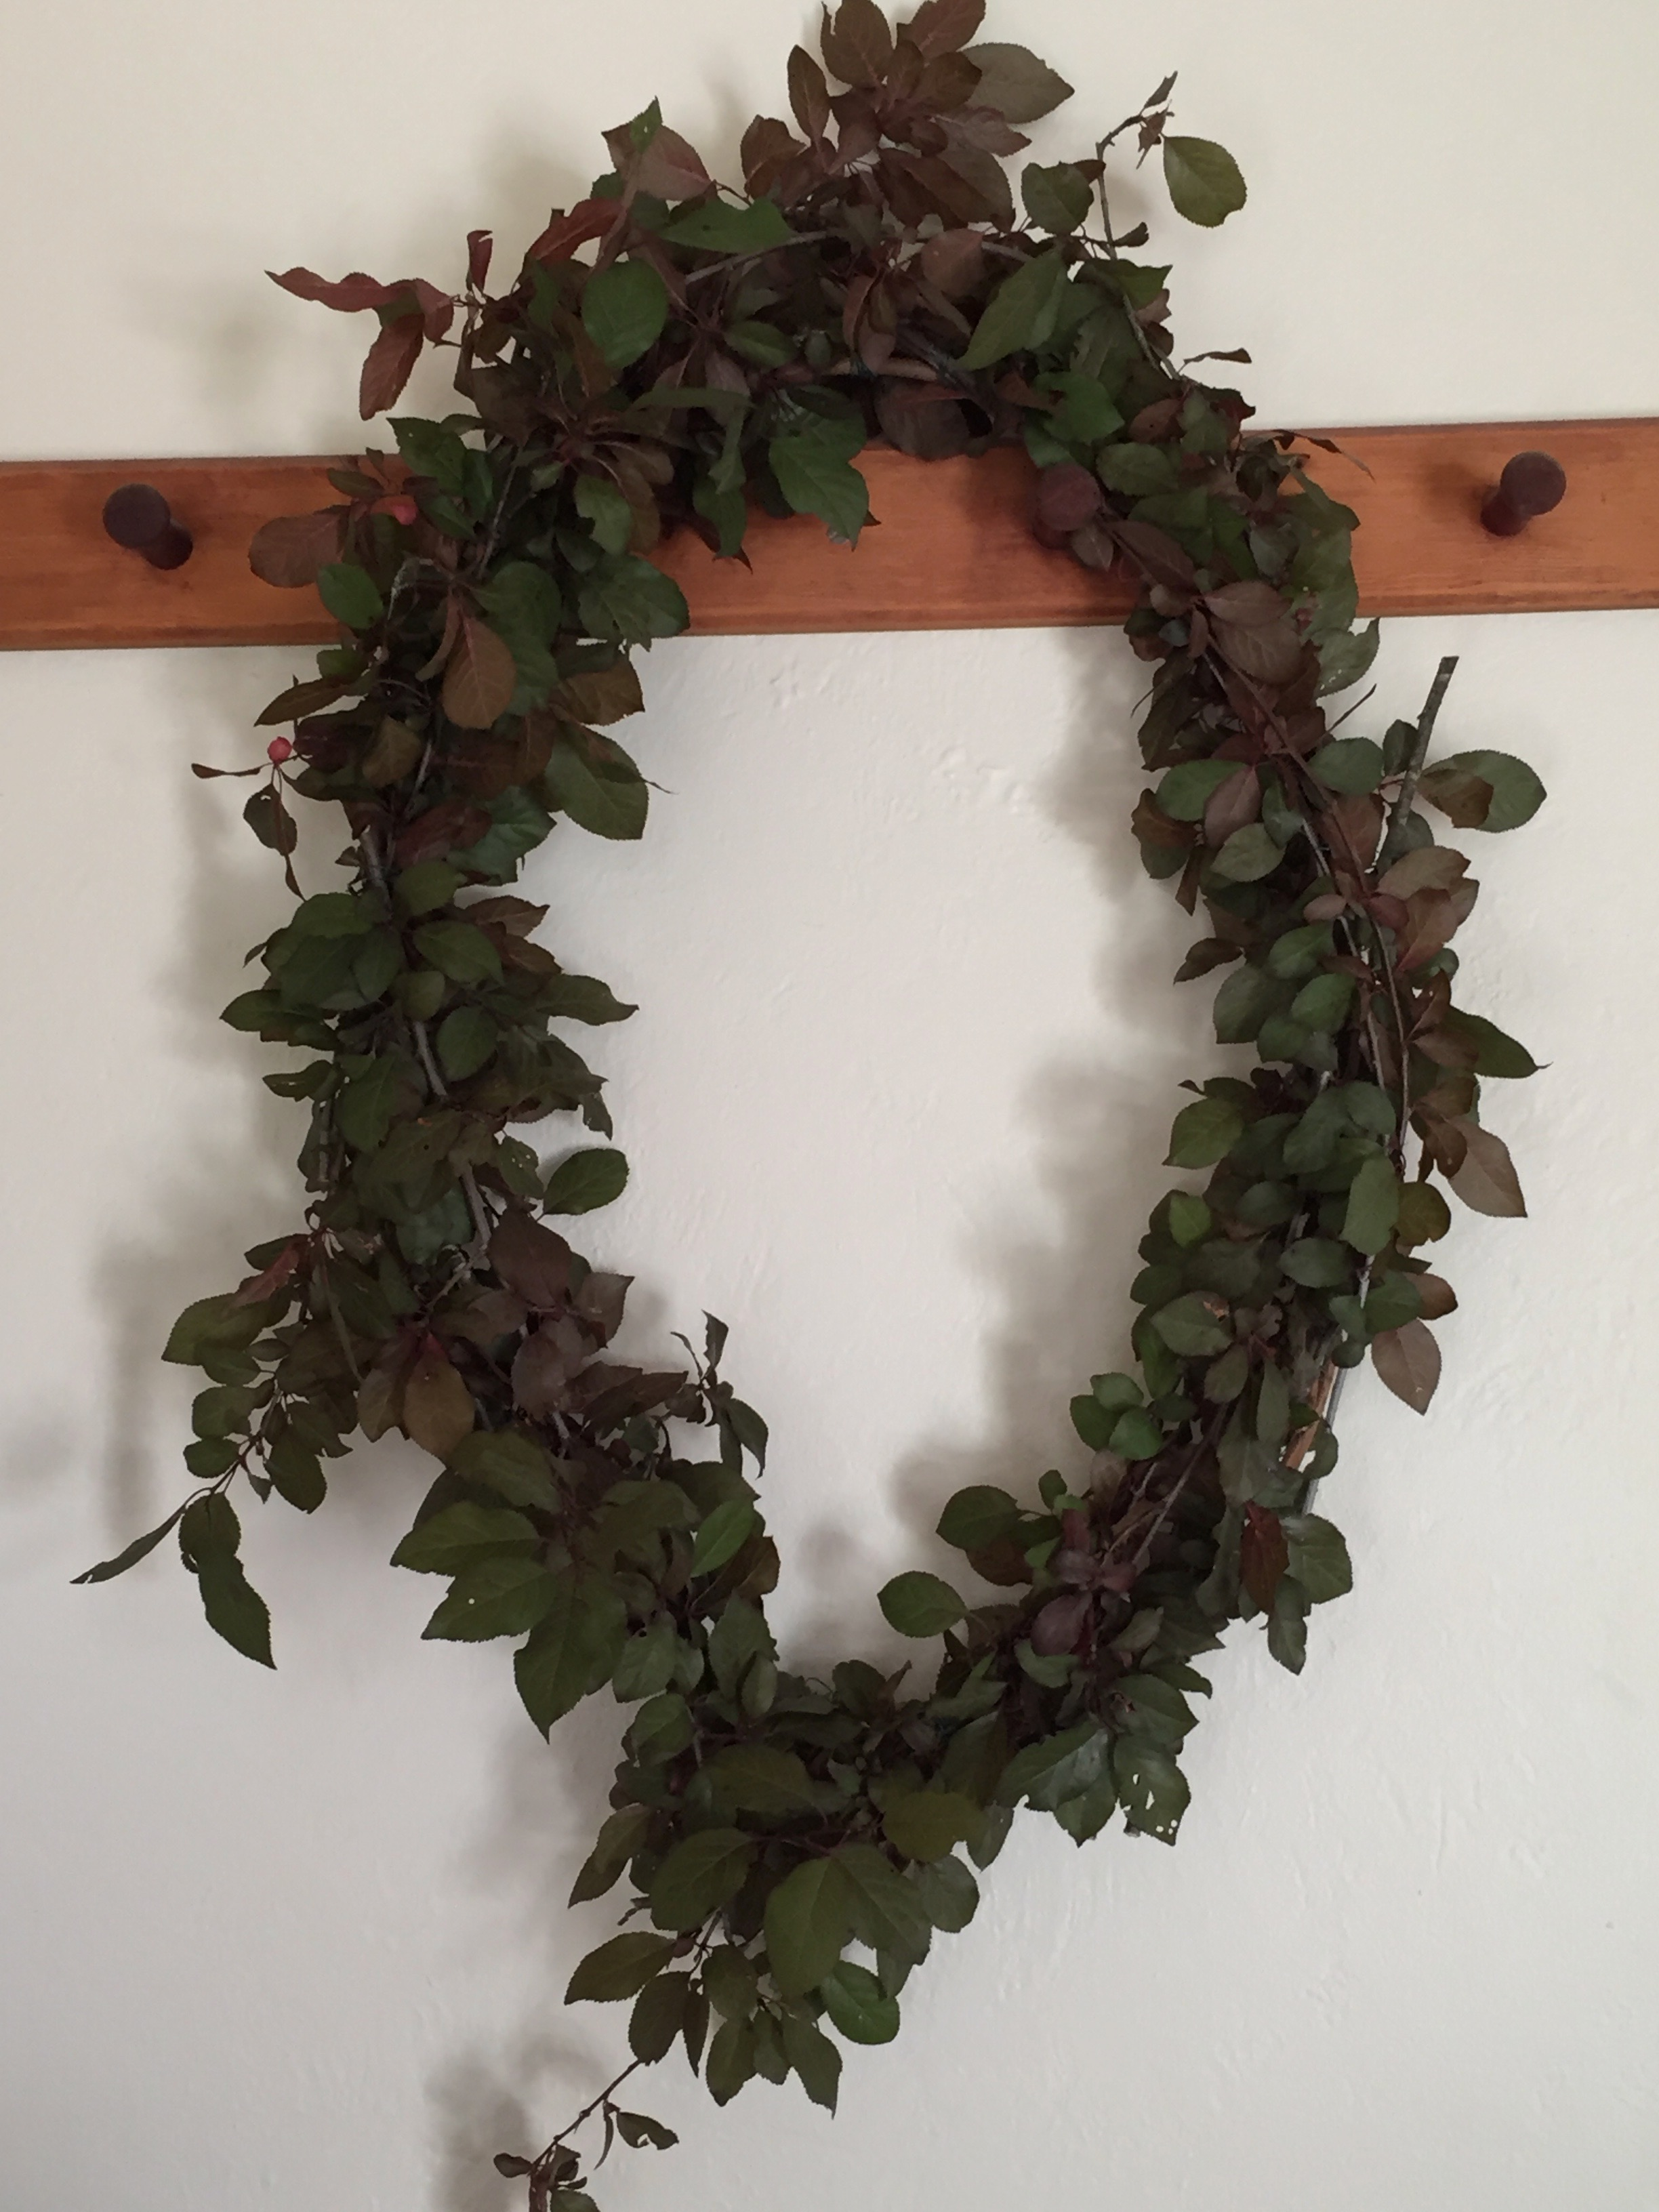 And lastly, here is the July wreath. I made it out of wild cherry plums that grow down by the (now dry) creek in the open space ( Prunus cerasifera) . This one has a half green, half red foliage, which is very pretty.